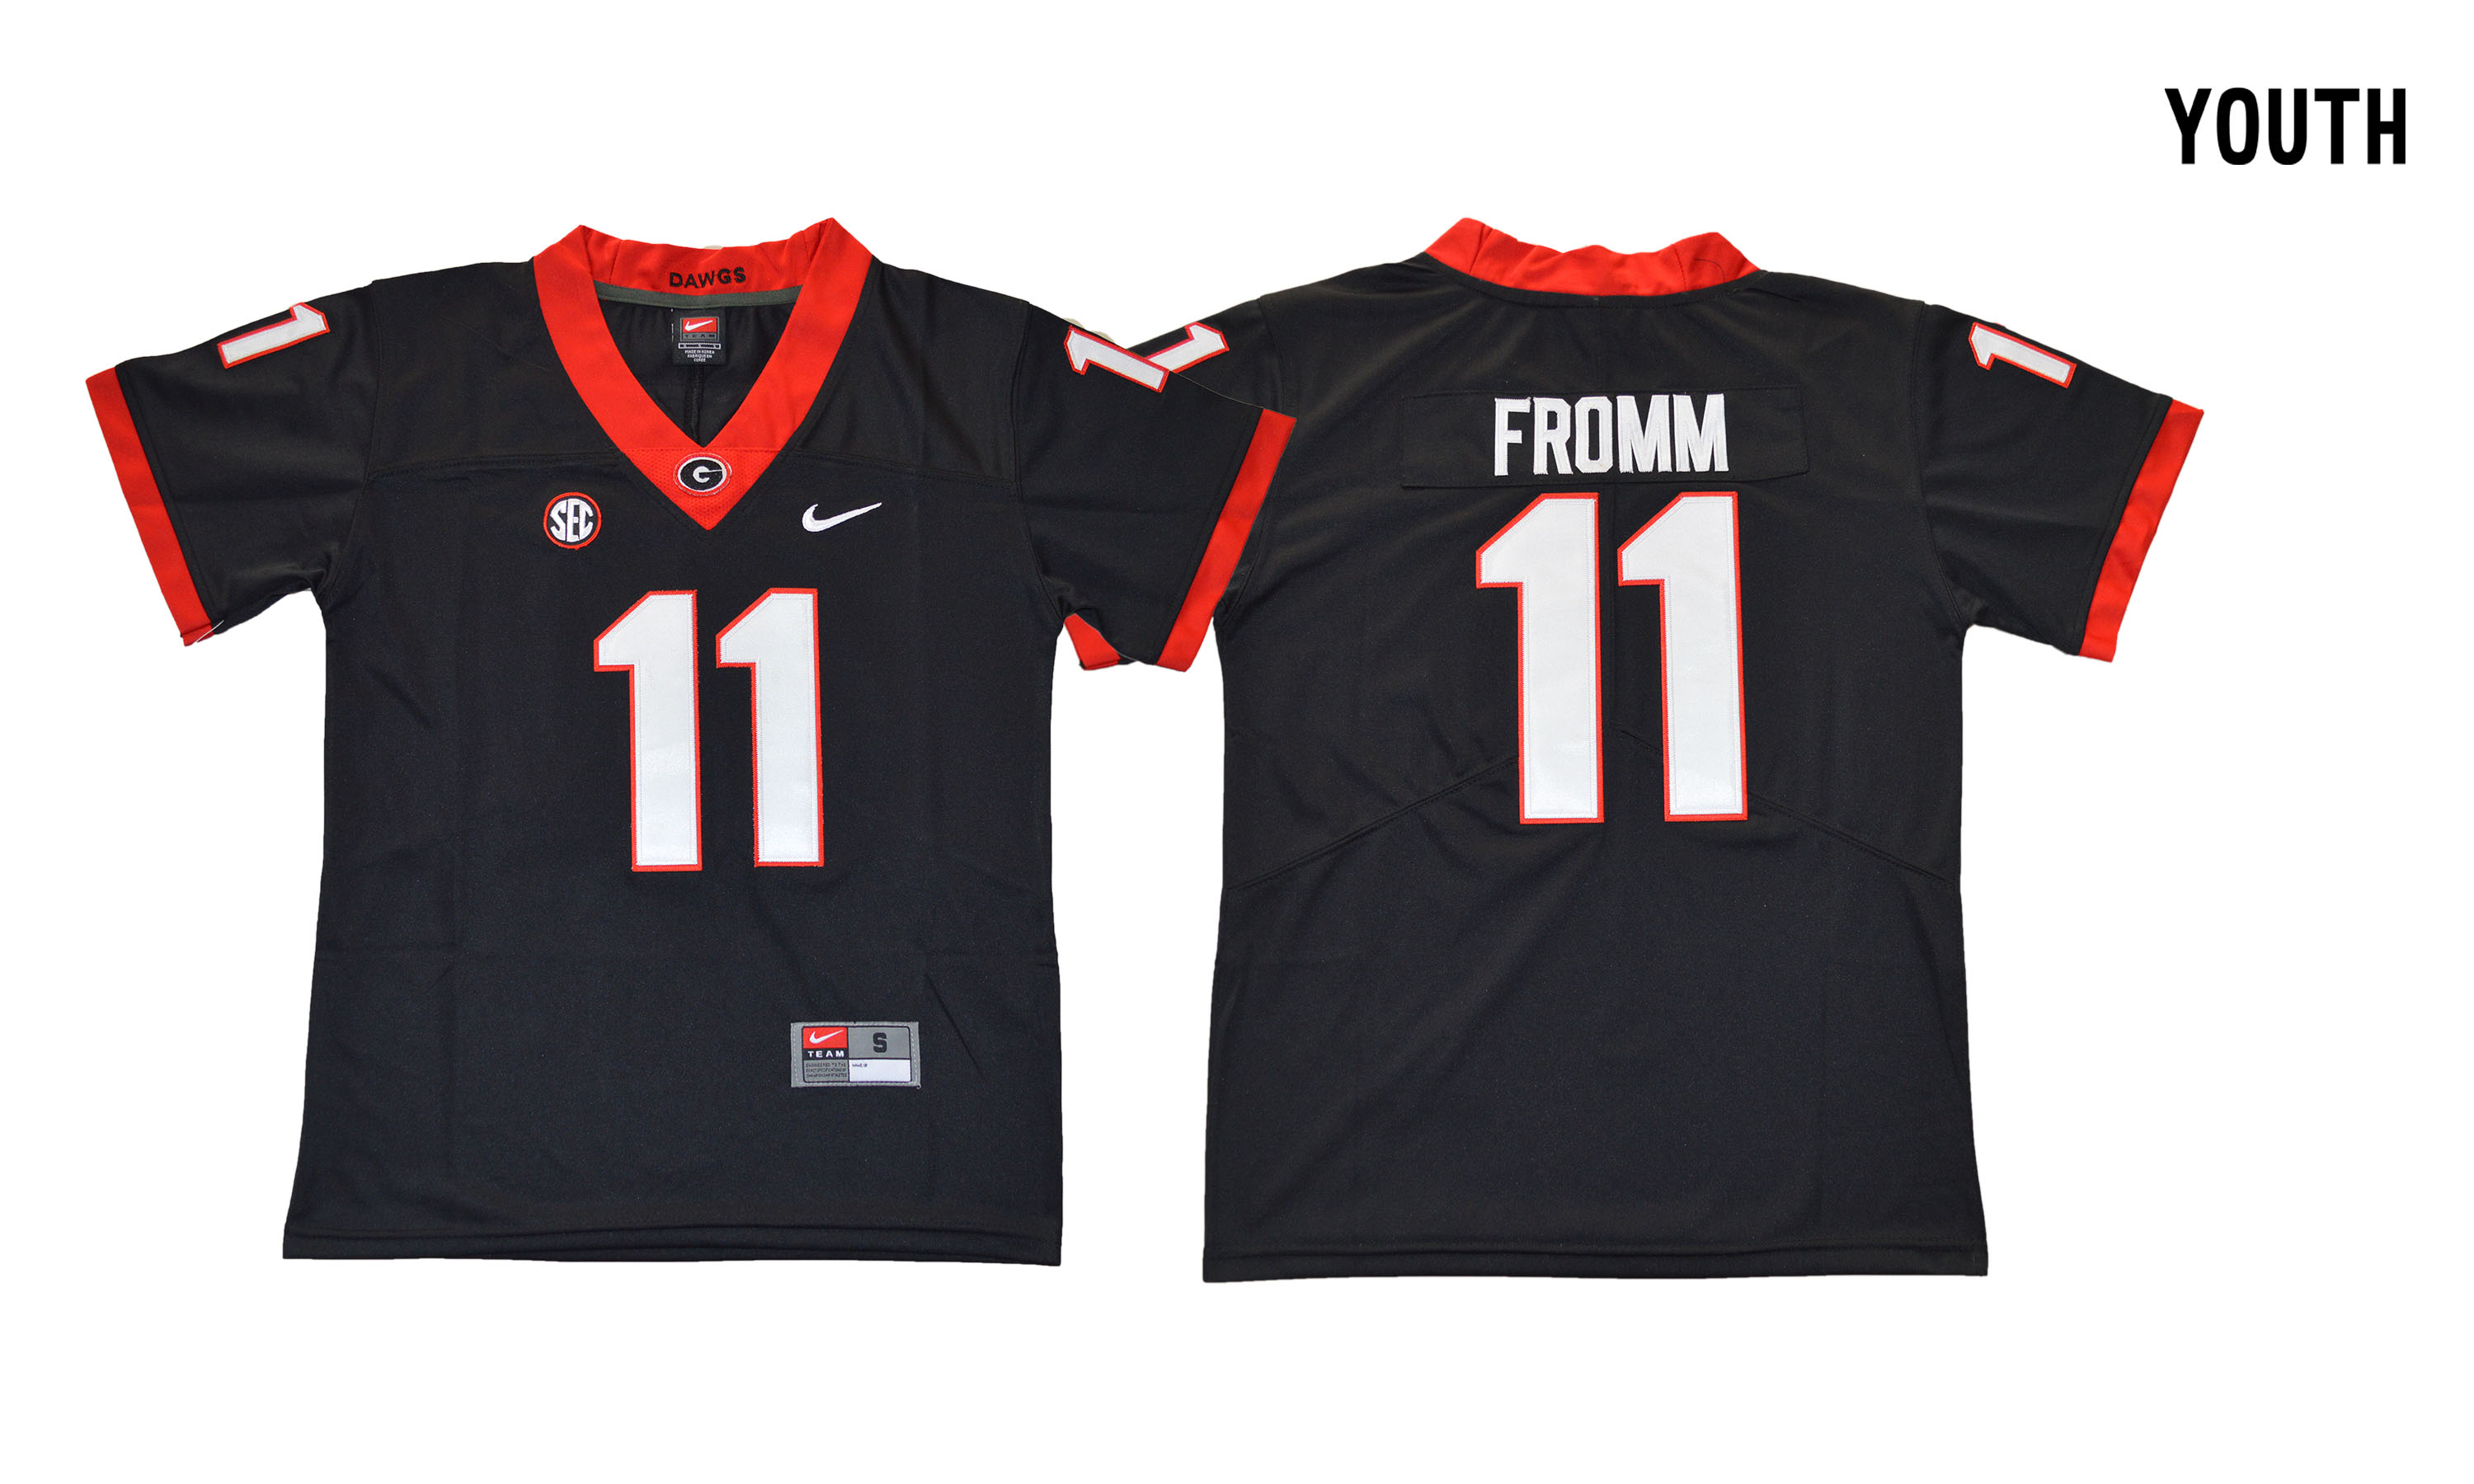 Georgia Bulldogs 11 Jake Fromm Black Youth College Football Jersey